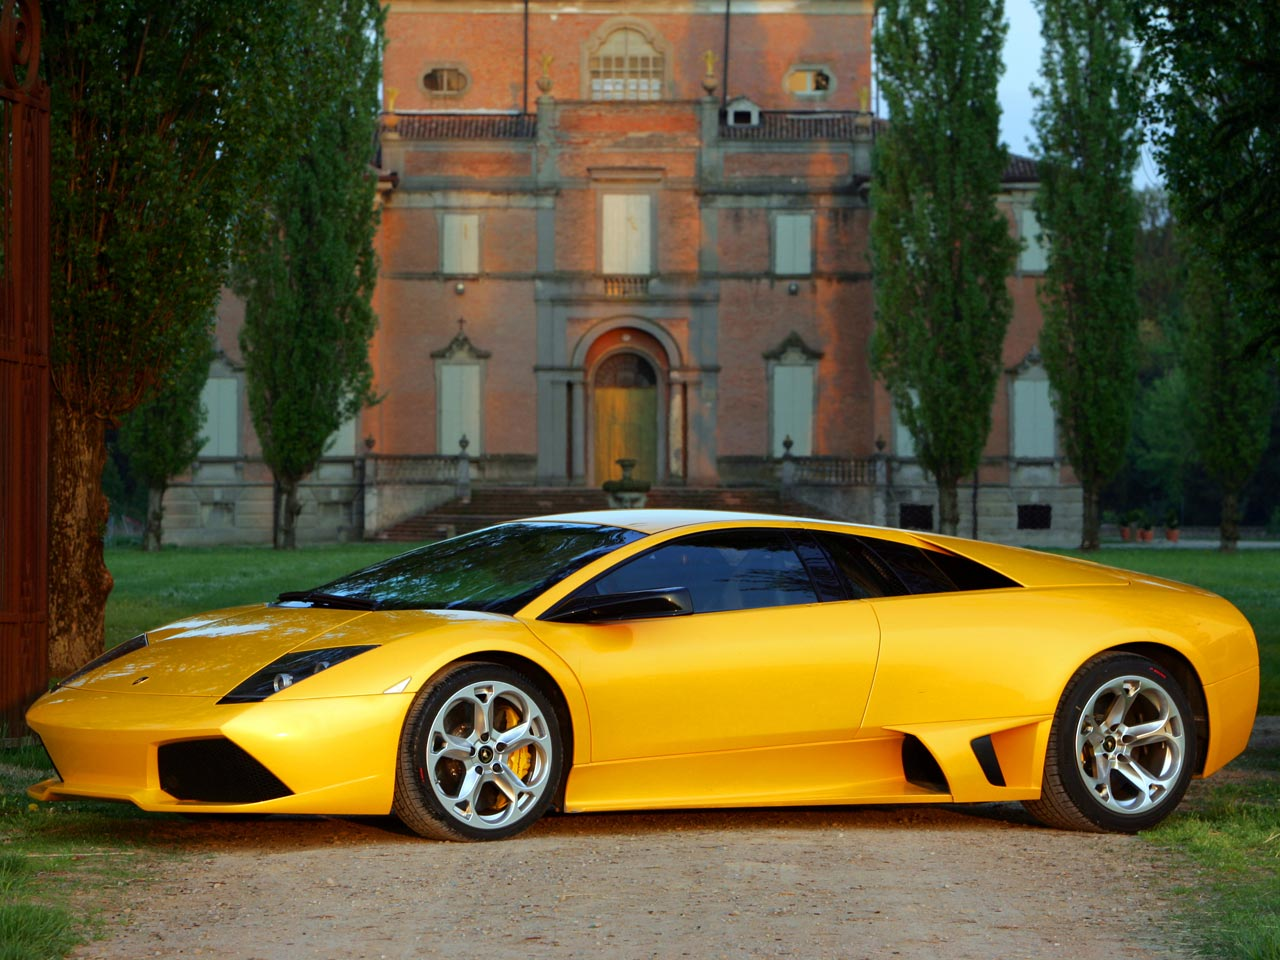 2007 lamborghini murcielago lp640 review - top speed